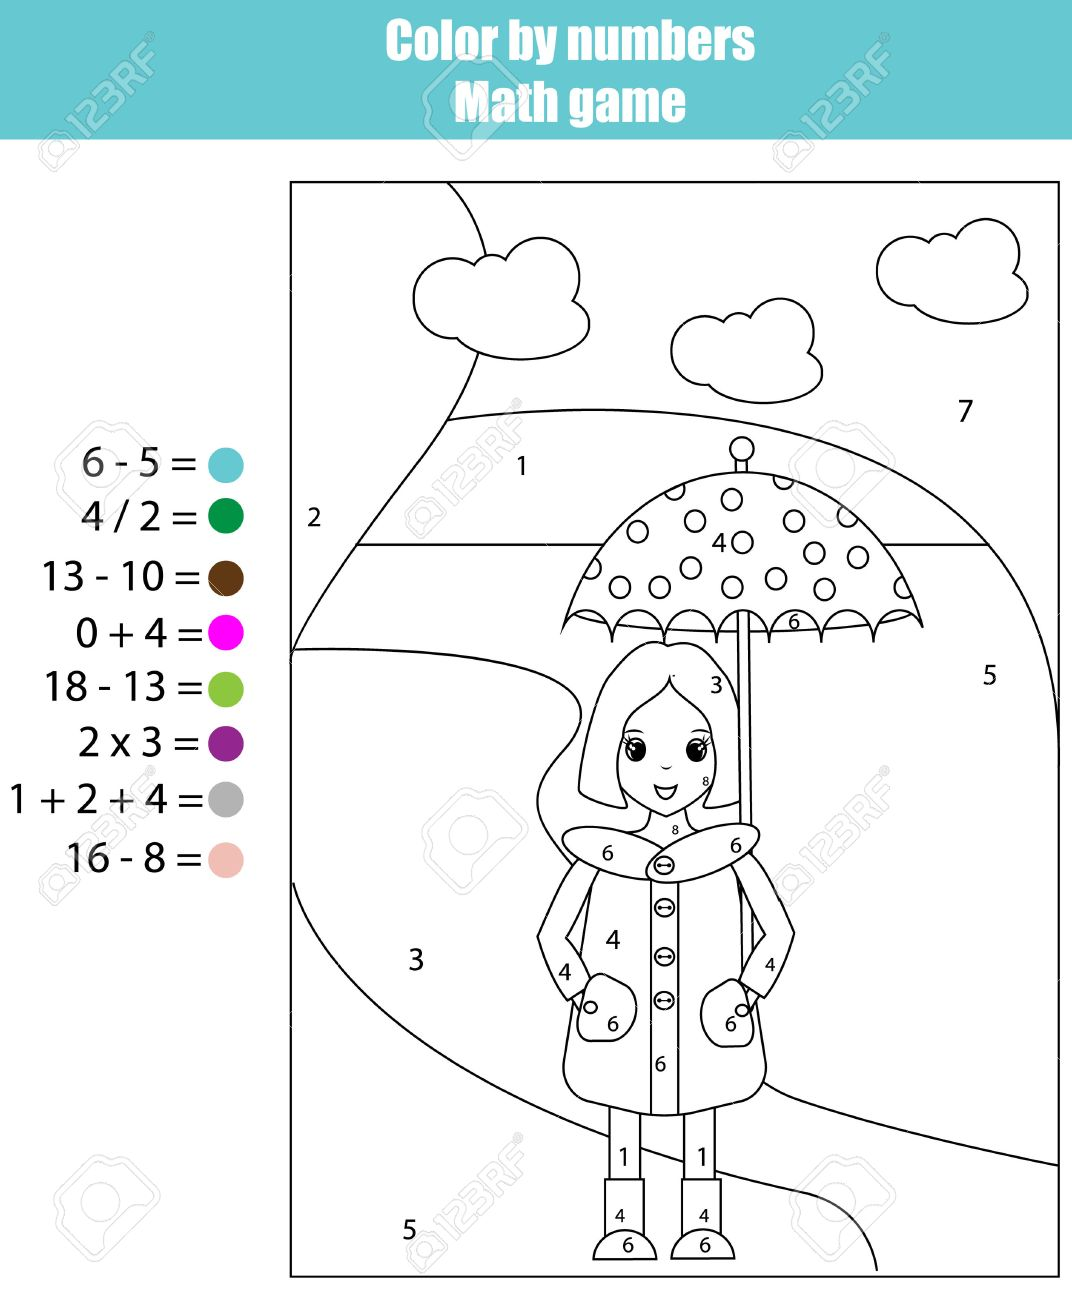 Coloring Page With Girl Color By Numbers Math Children Educational Game For School Years